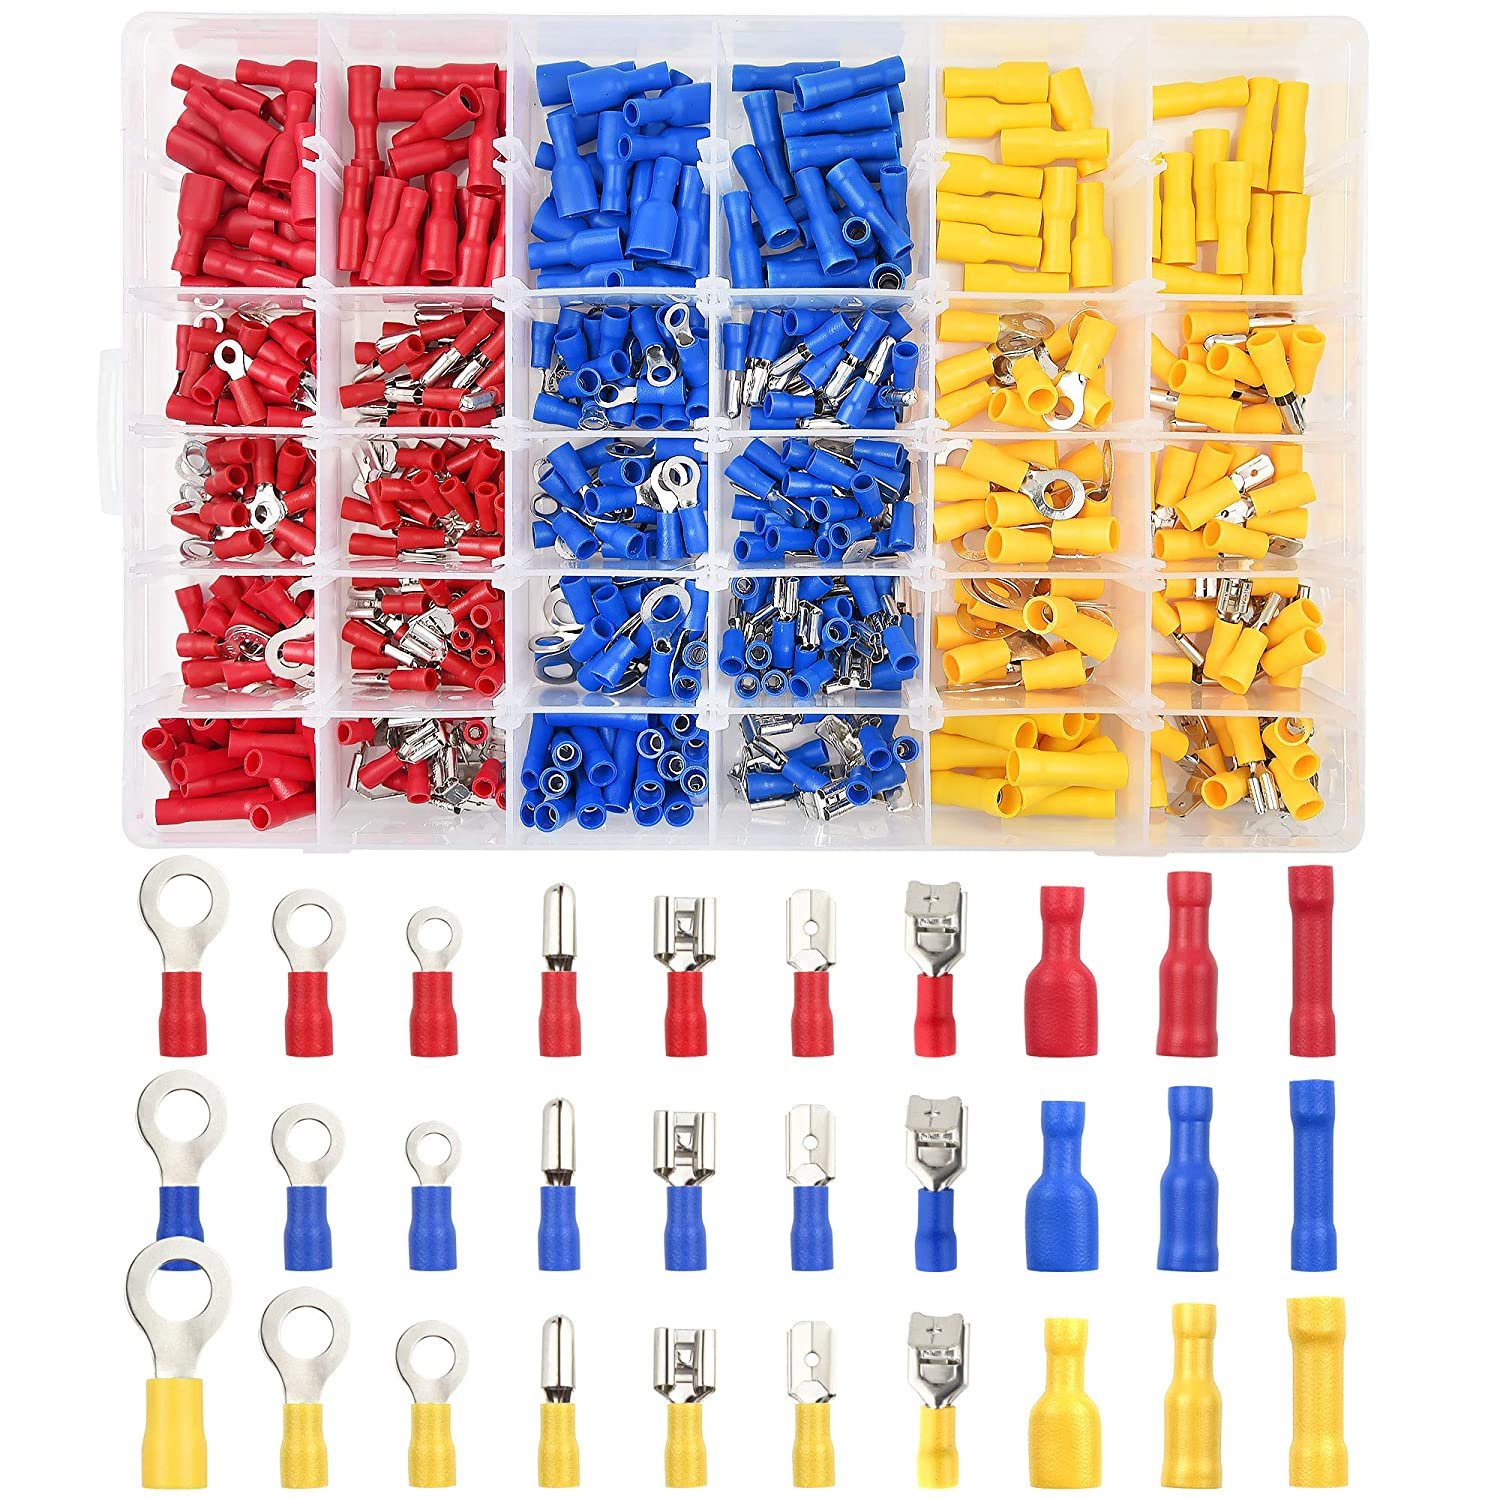 TUPARKA 500Pcs Electrical Wire Connectors Assorted Electrical Quick Connect Crimp Terminals Kit Electrical Terminals Spade Bullet Butt Connectors